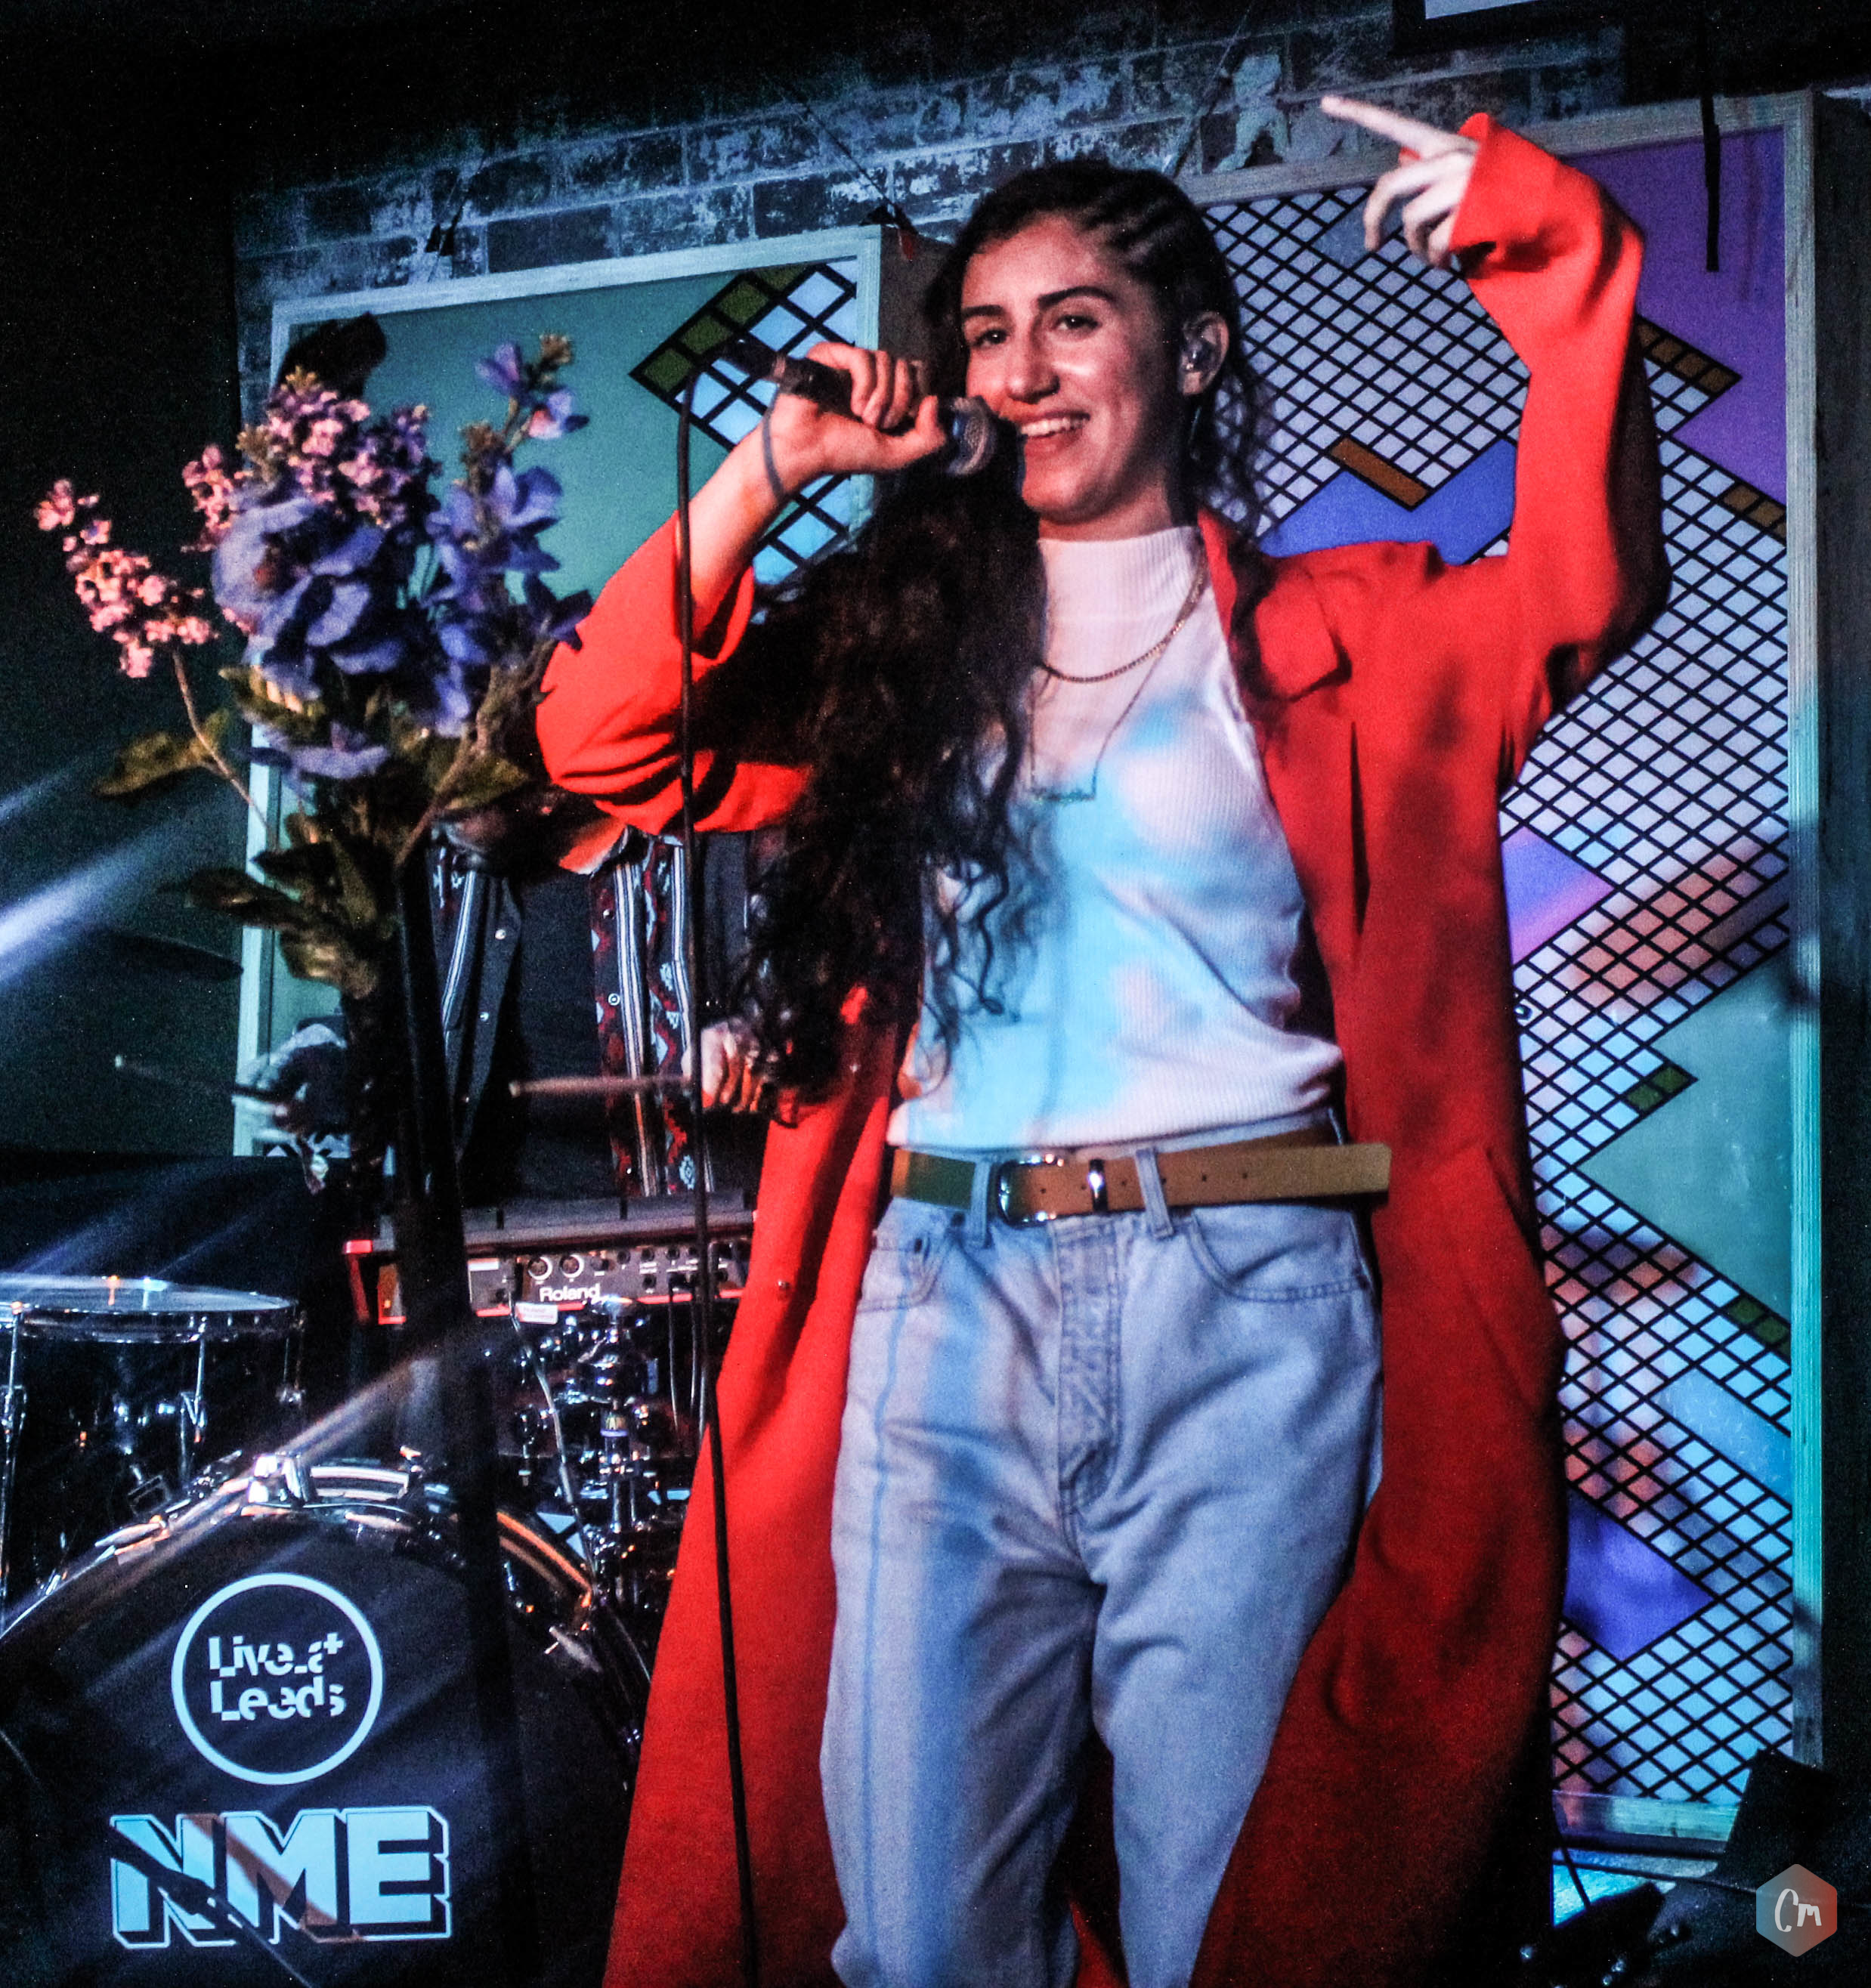 NAAZ WITH NME MAGAZINE